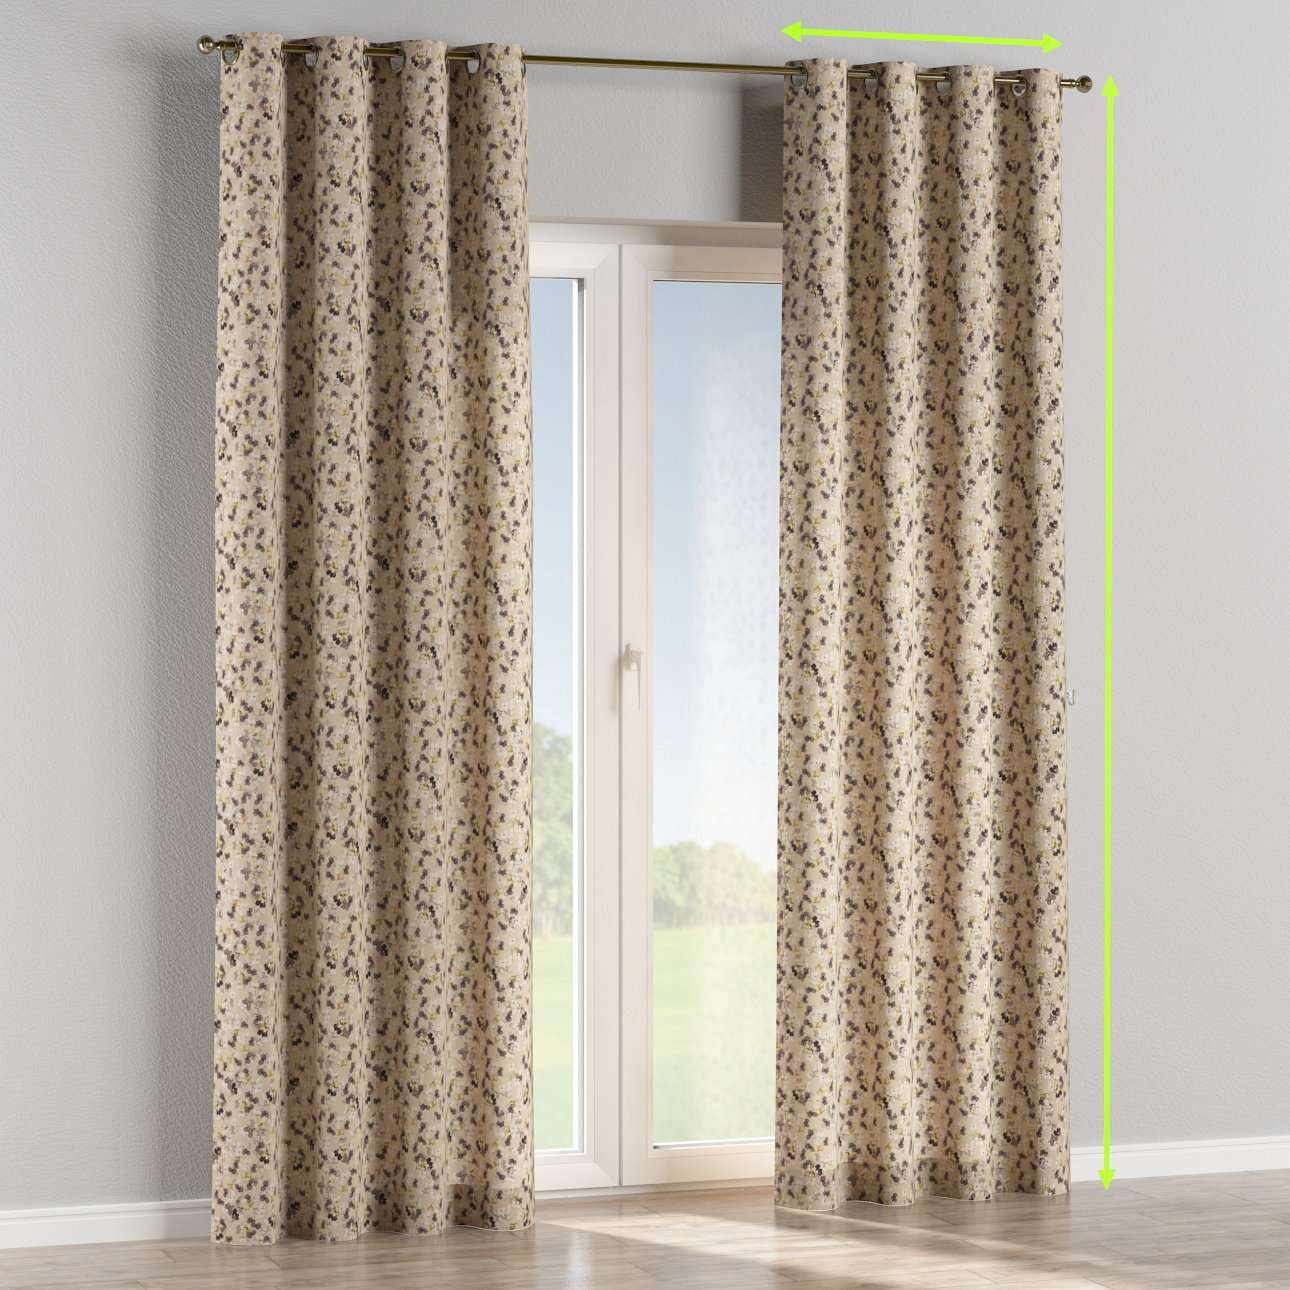 Eyelet lined curtains in collection Londres, fabric: 140-48